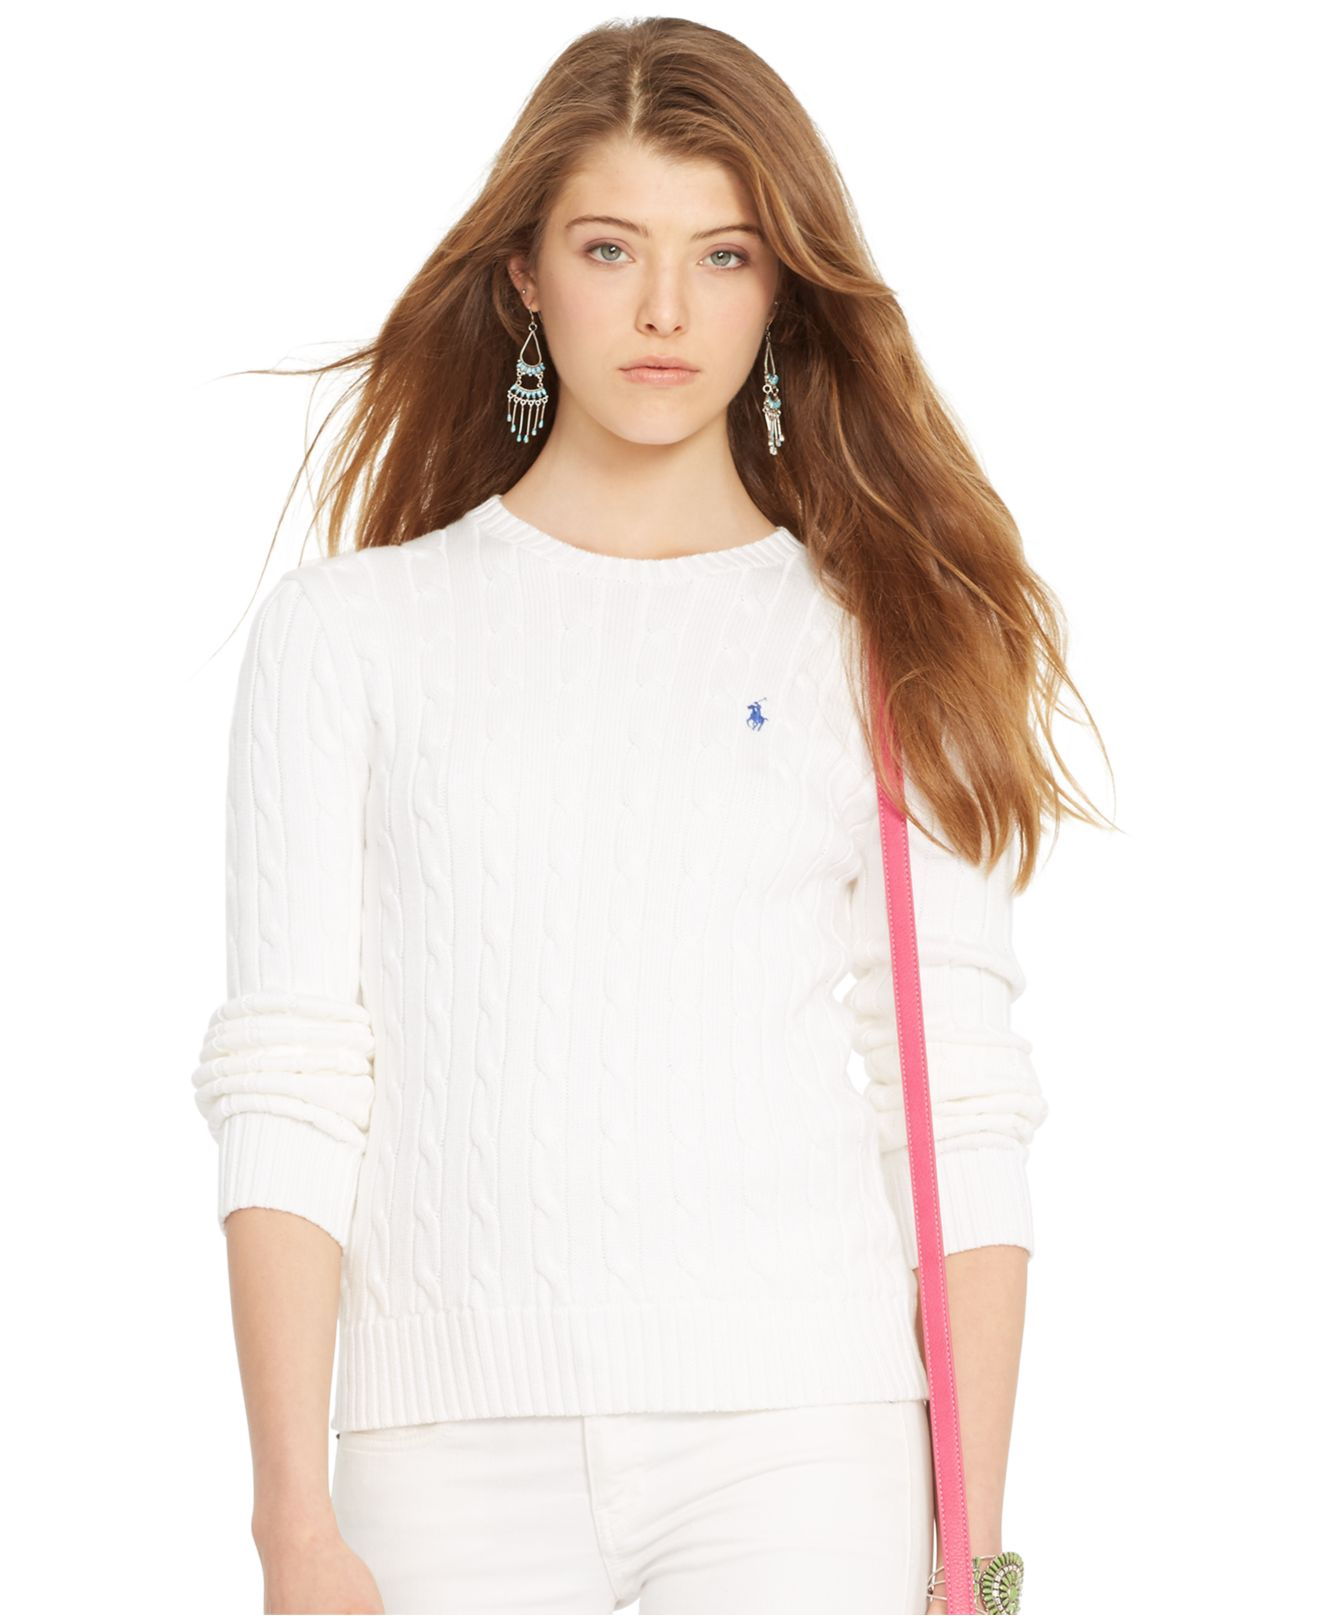 fb4631de2 Lyst - Polo Ralph Lauren Crew-Neck Cable-Knit Sweater in White